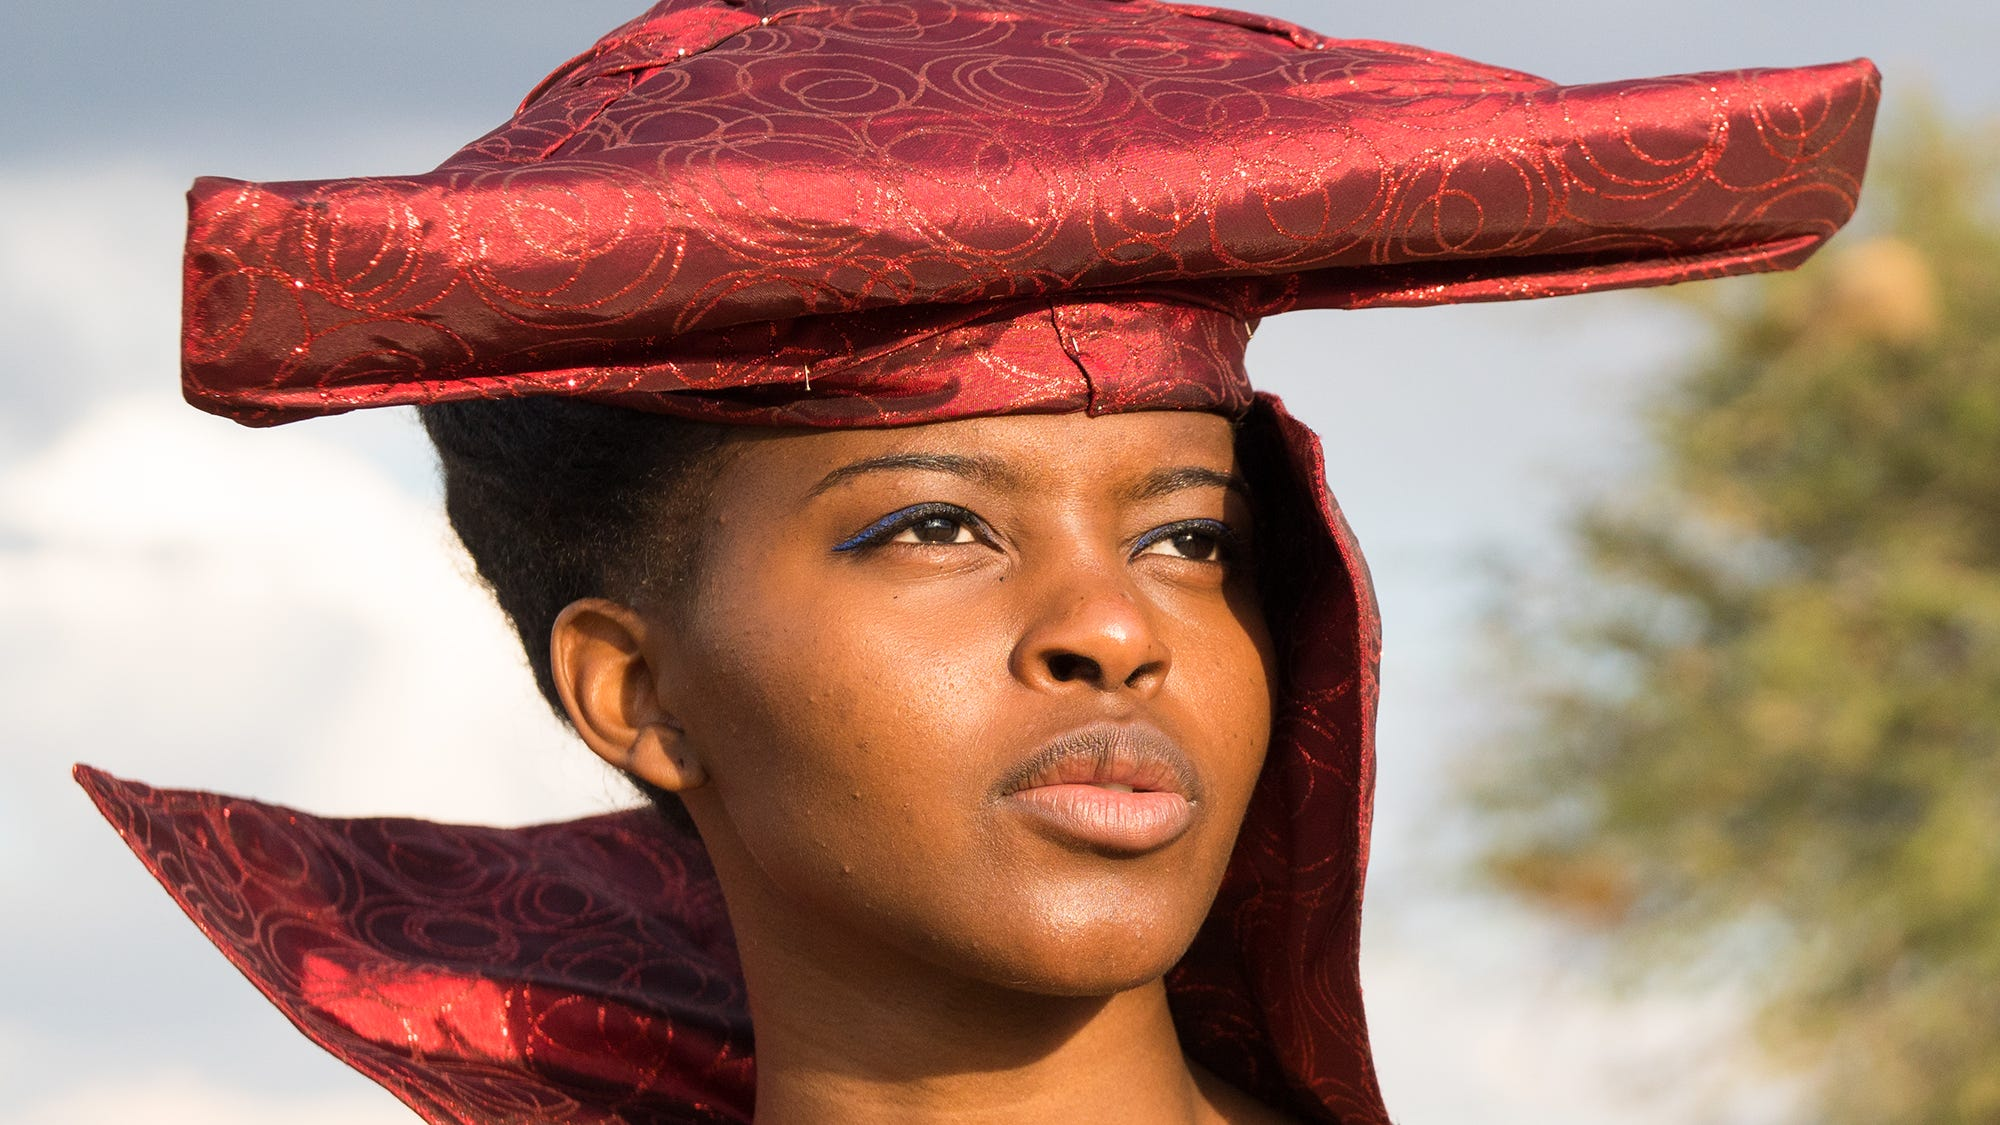 Why Namibian Women Wear Victorian Style Herero Dresses